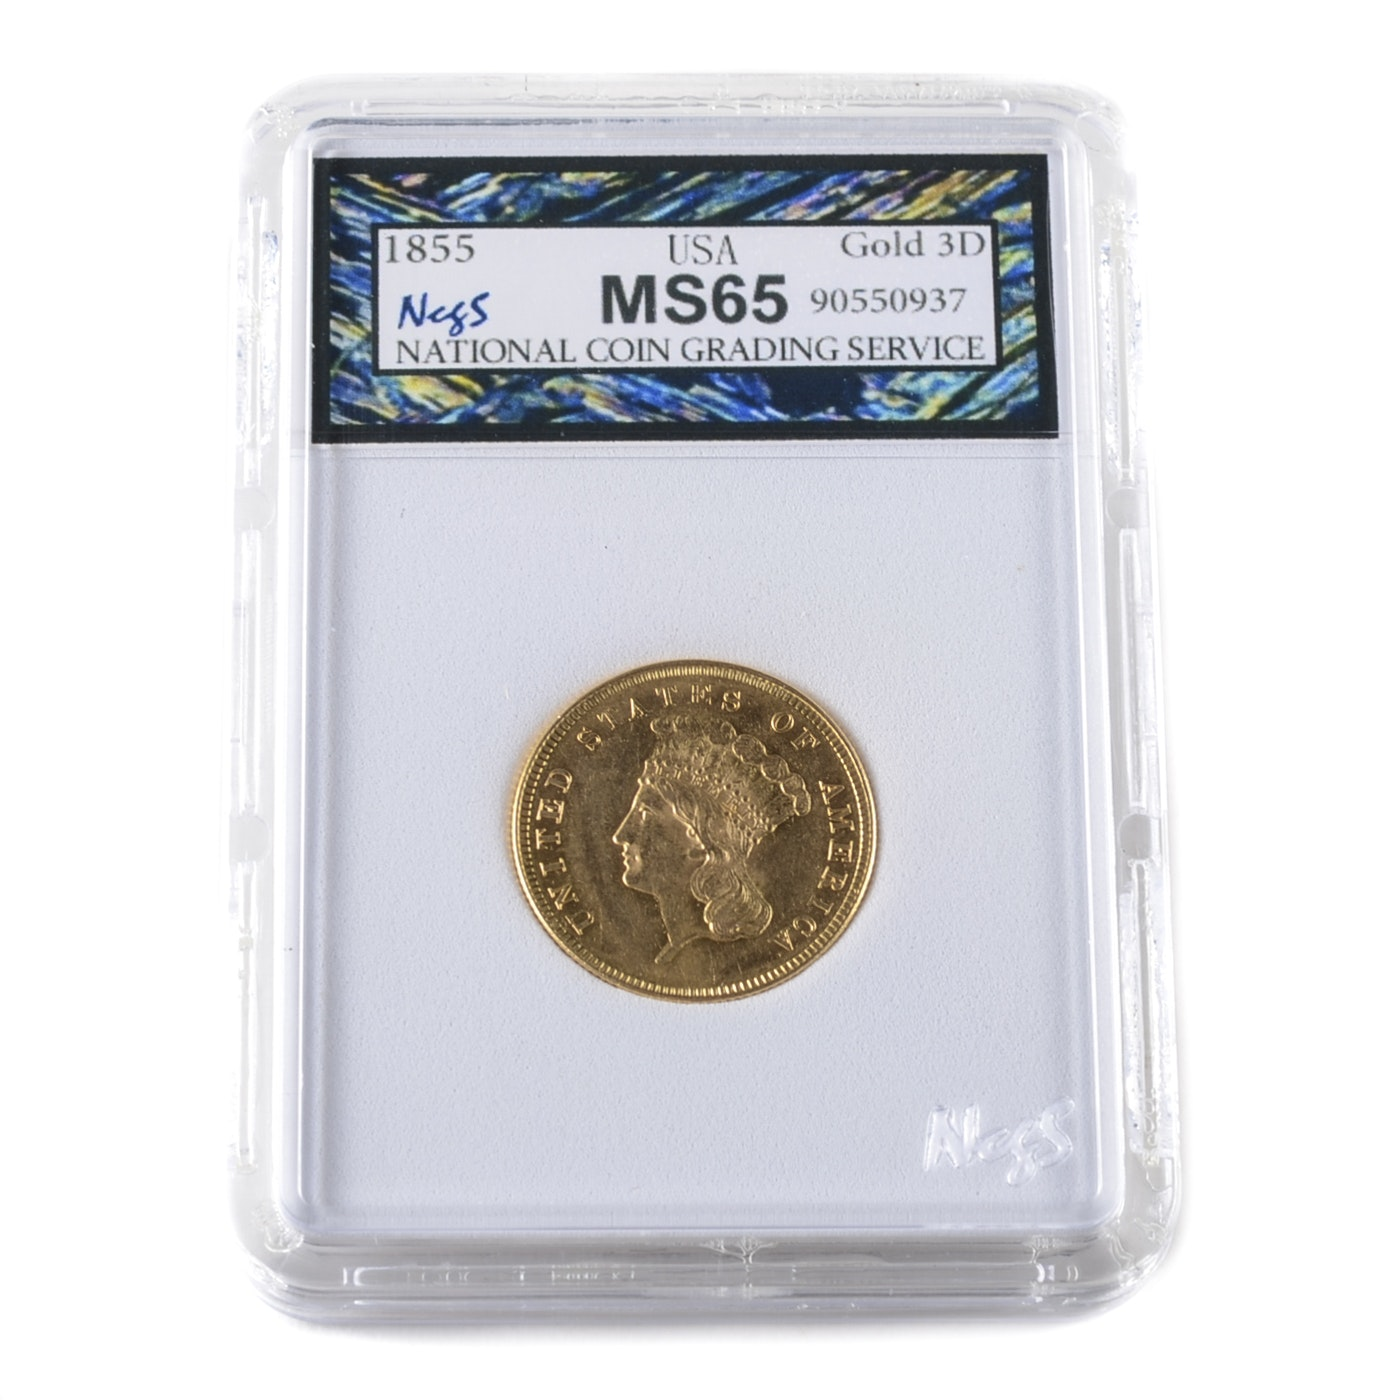 Graded MS65 (By NCGS) 1855 Indian Head Princess $3 Gold Coin